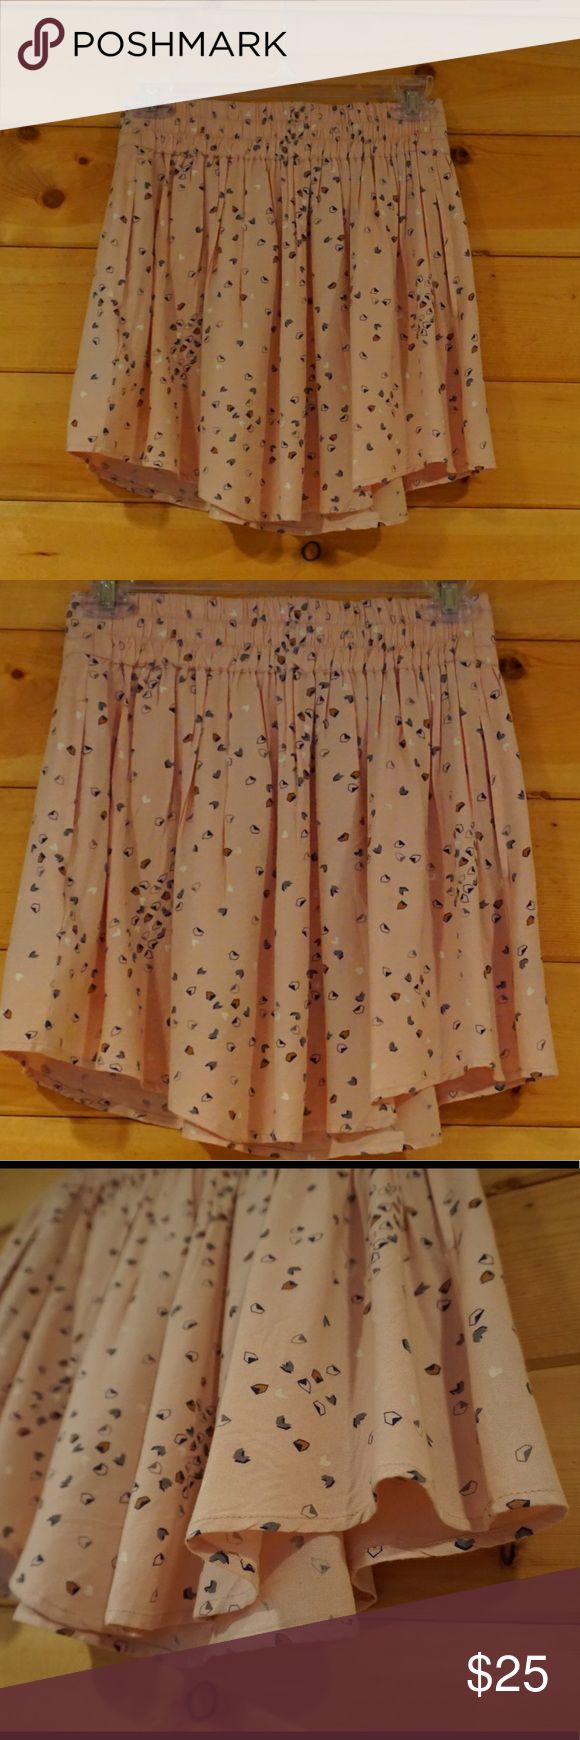 Light pink Skater skirt from Urban Outfitters Beautiful light pink Skater skirt with pockets from Urban Outfitters. Has only been worn gently. Features a cute design in gold and Navy, and also has pockets. Feel free to make an offer or bundle for discounts. 😊💕 Urban Outfitters Skirts Circle & Skater